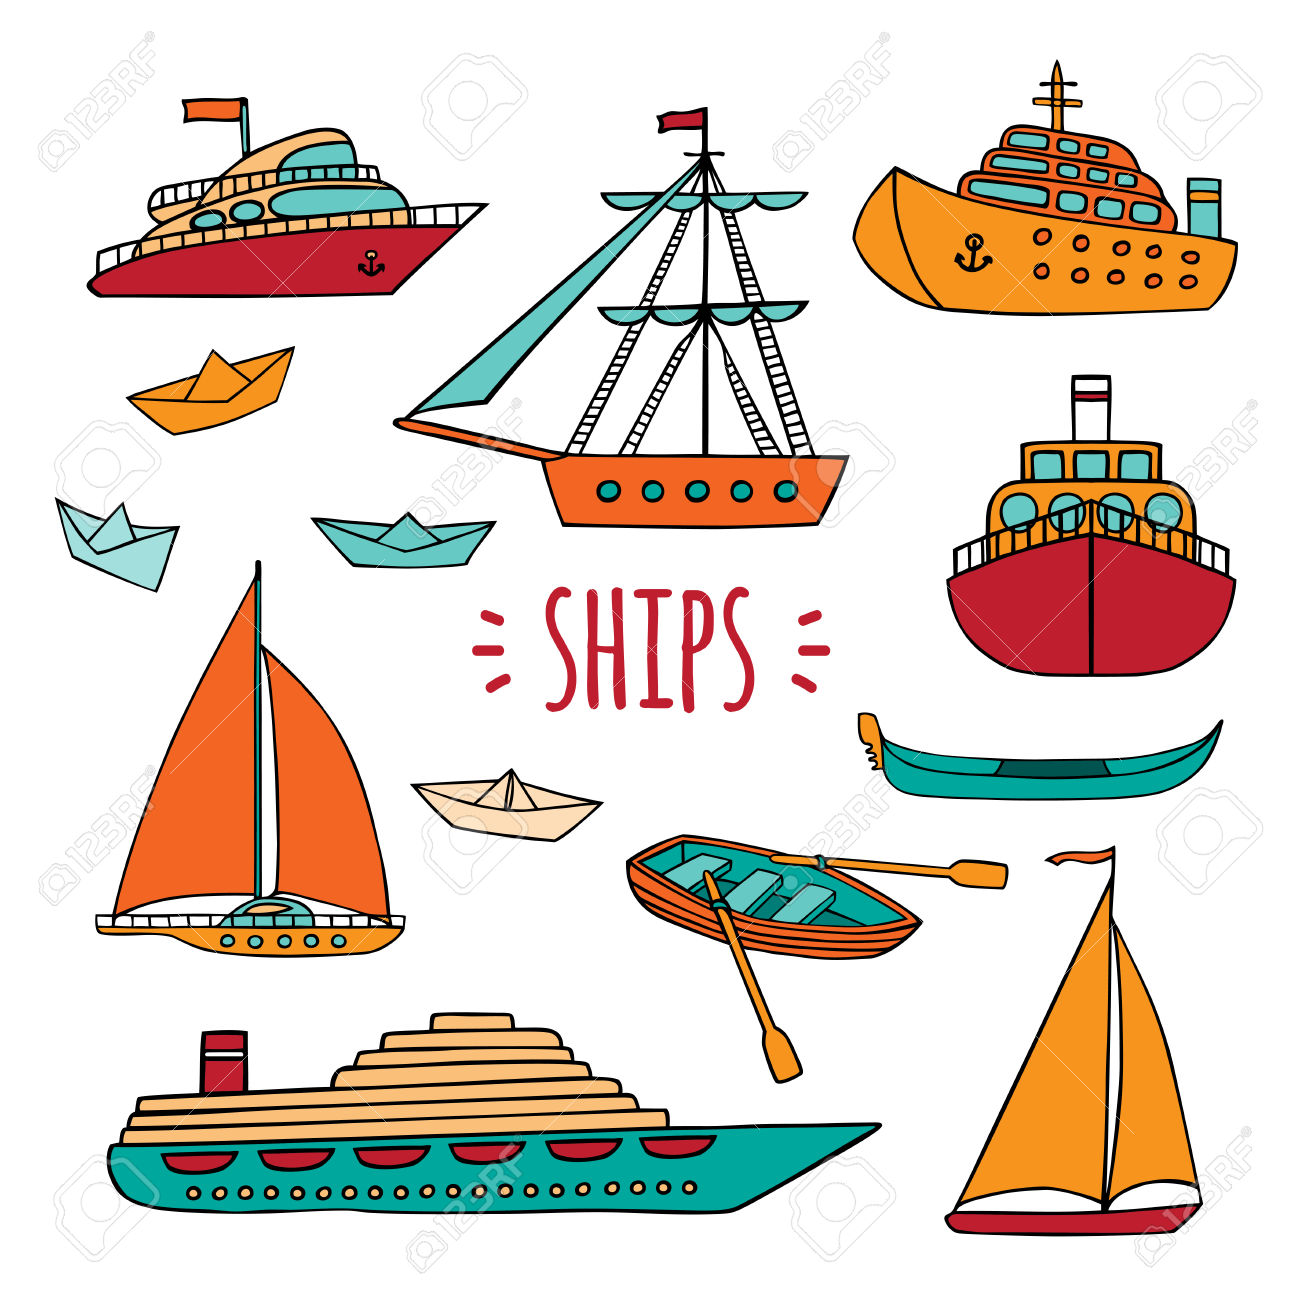 Set Of Maritime Transport In Doodle Style. Ship, Boat, Vessel.